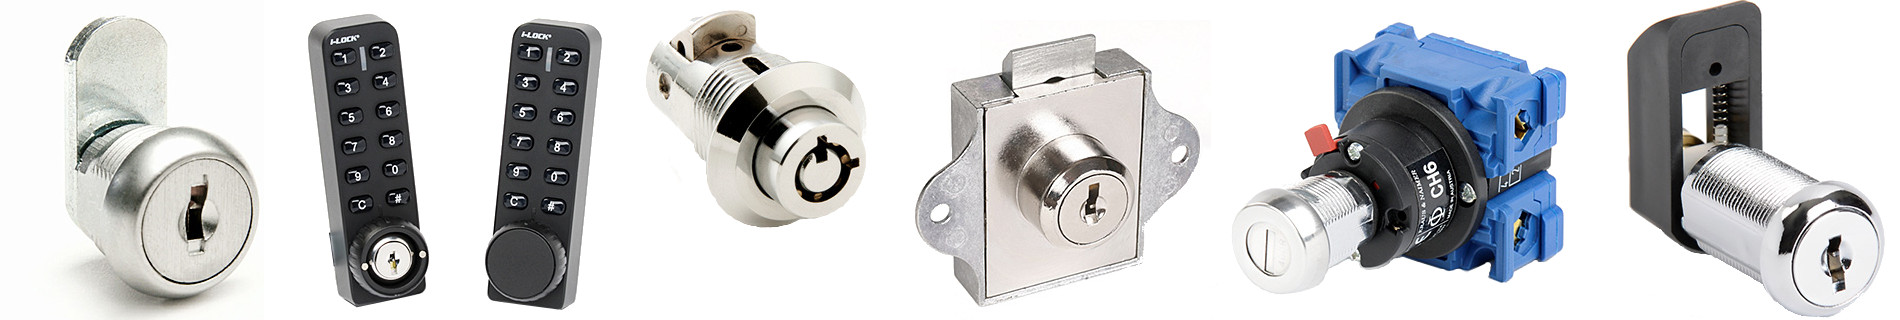 Lock Manufacturers Lock Suppliers